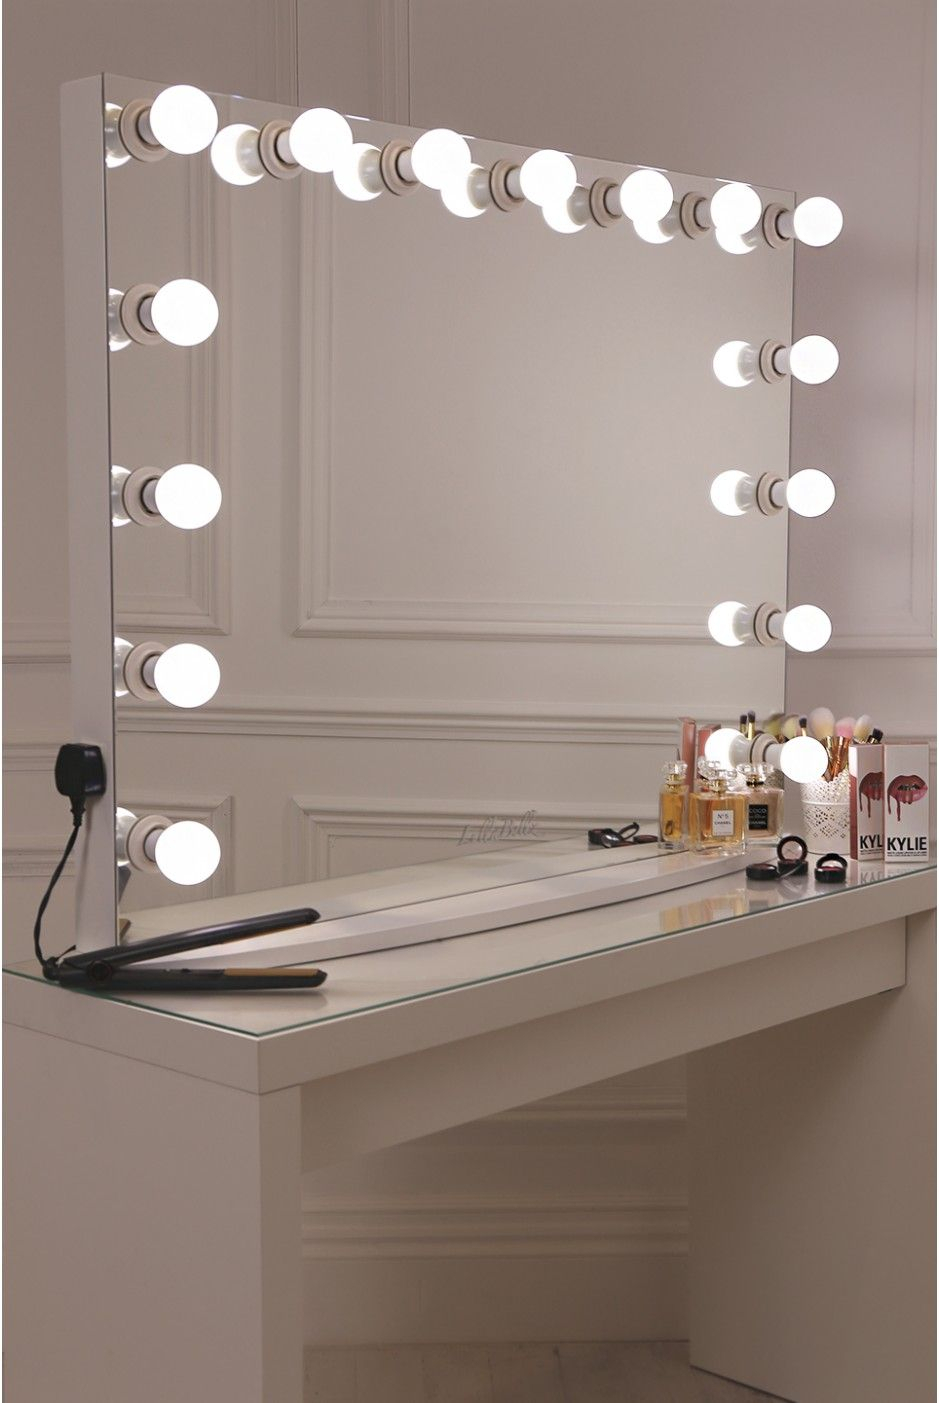 Lullabellz Hollywood Glow Xl Pro Vanity Mirror | New Bedroom Inside Vanity Mirrors (View 5 of 20)